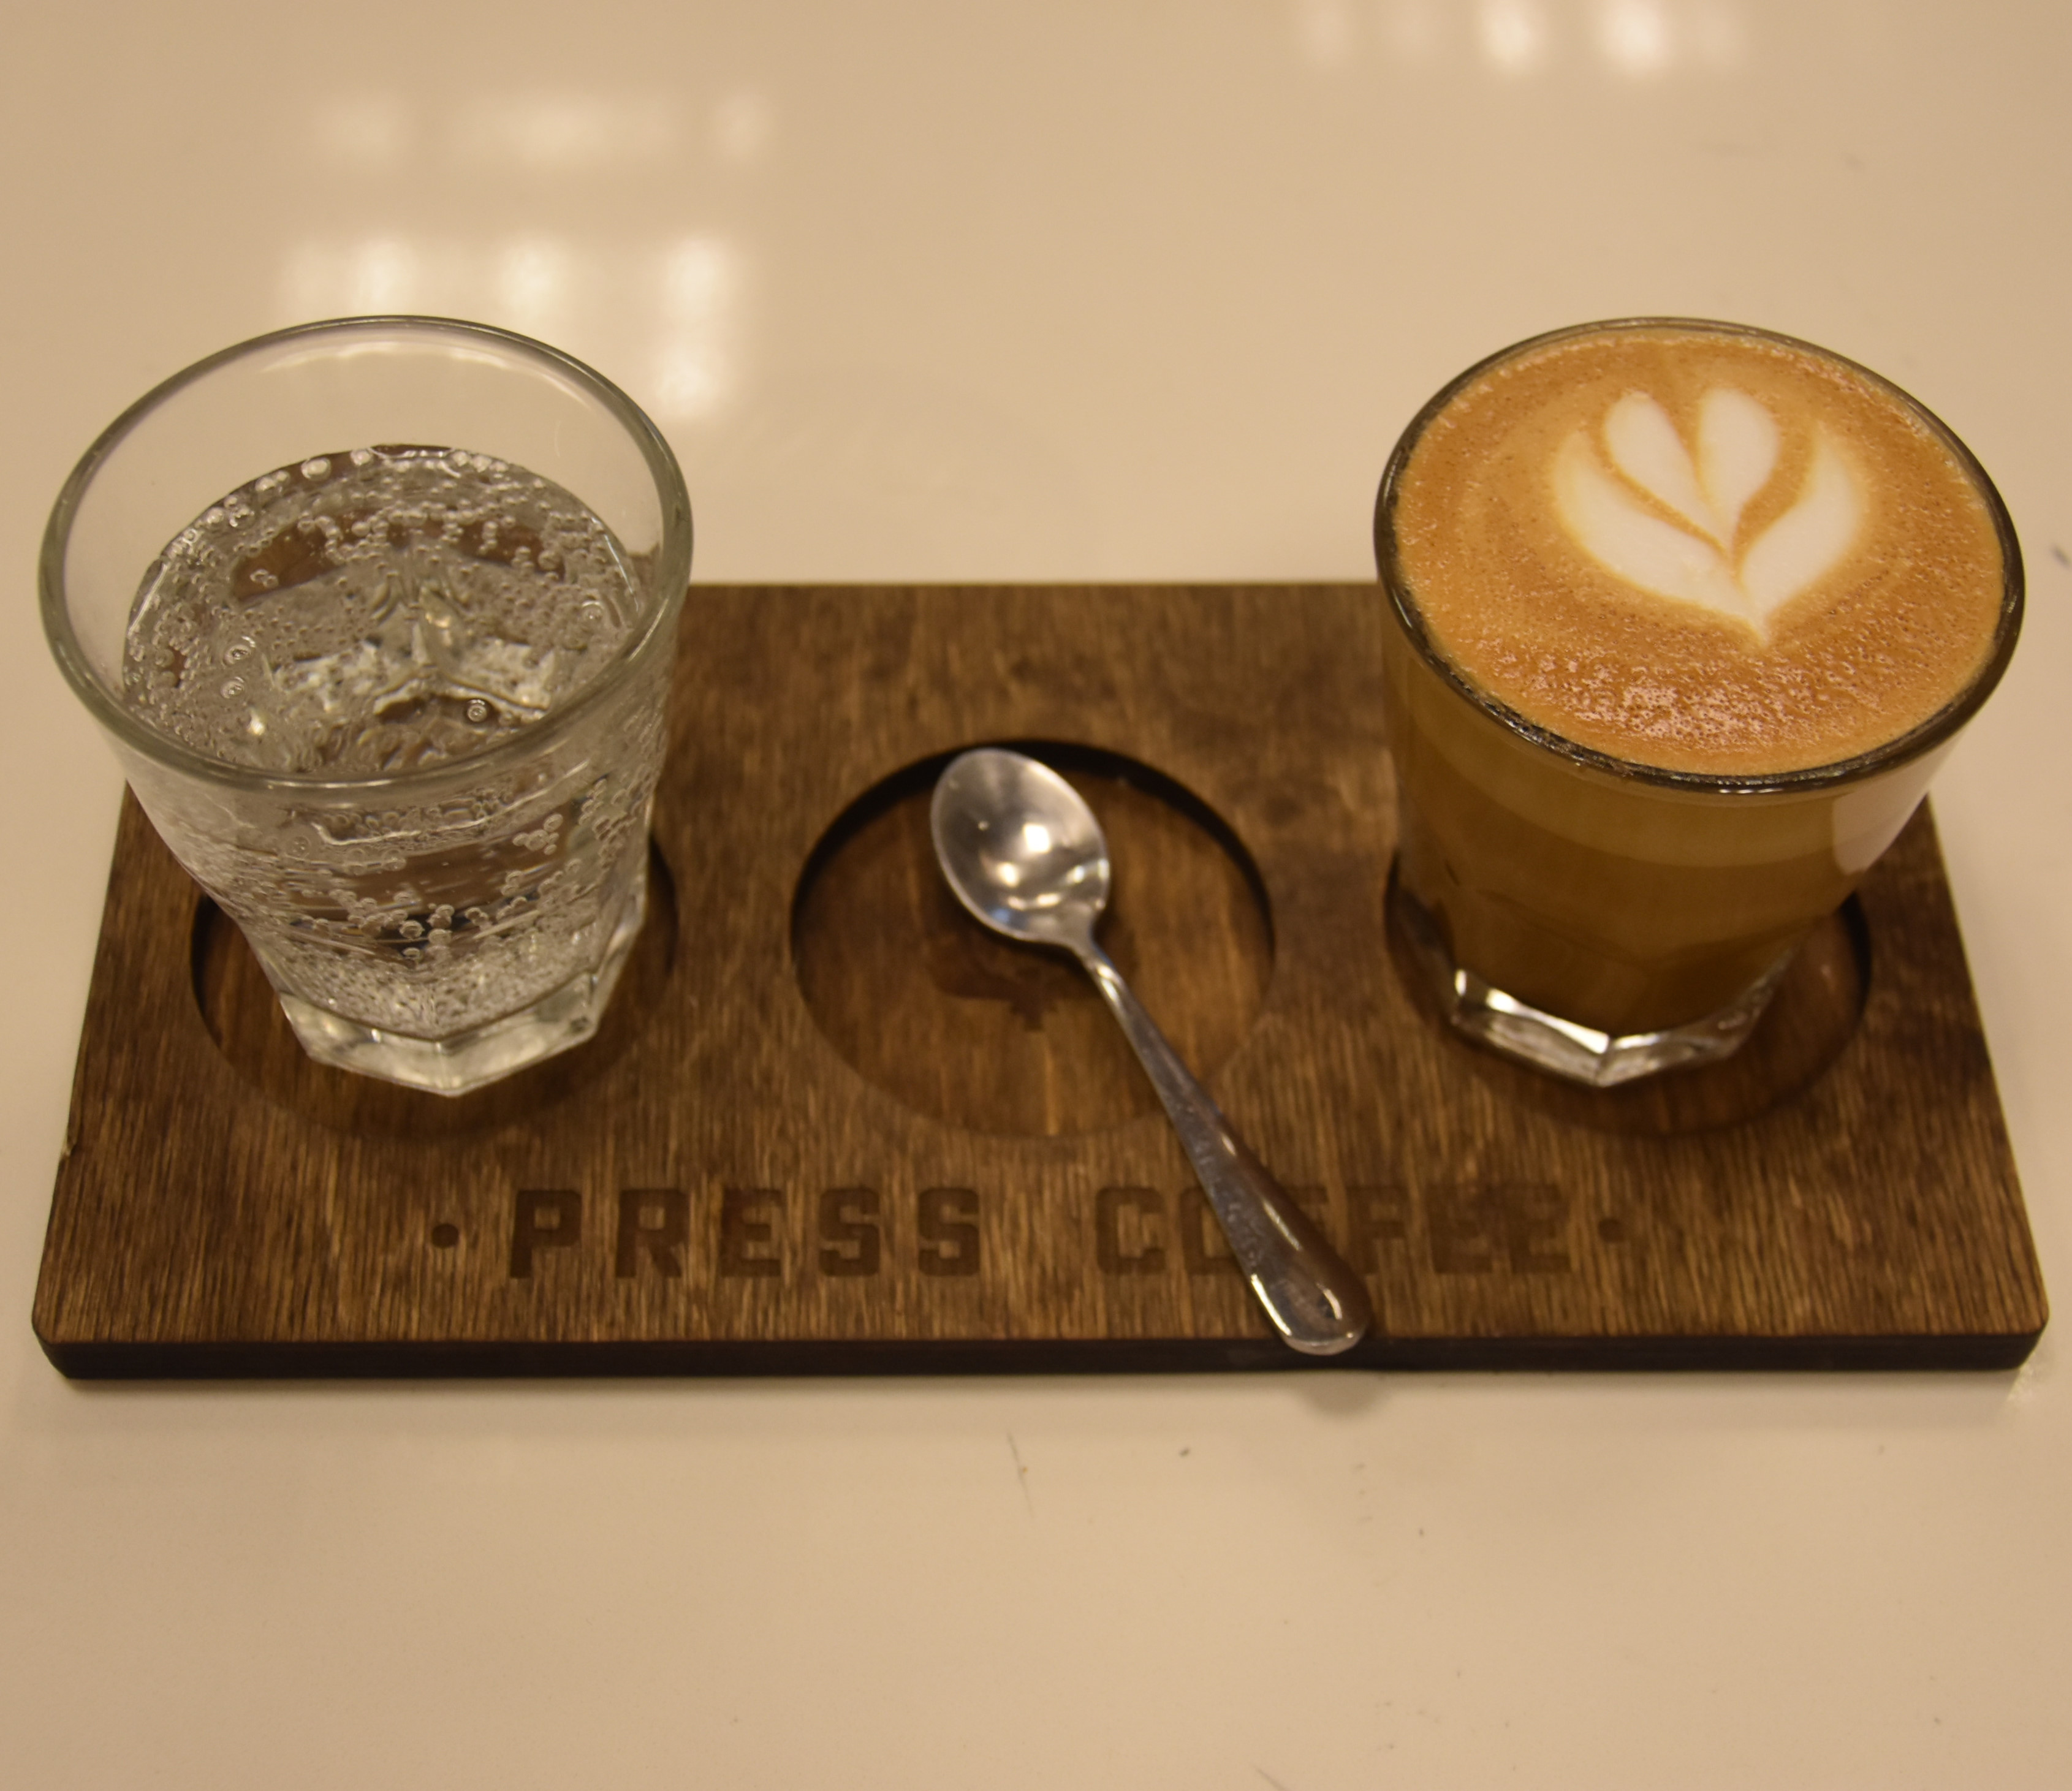 My cortado at Press Coffee Waterfront, served on a wooden tray with a glass of sparkling water.